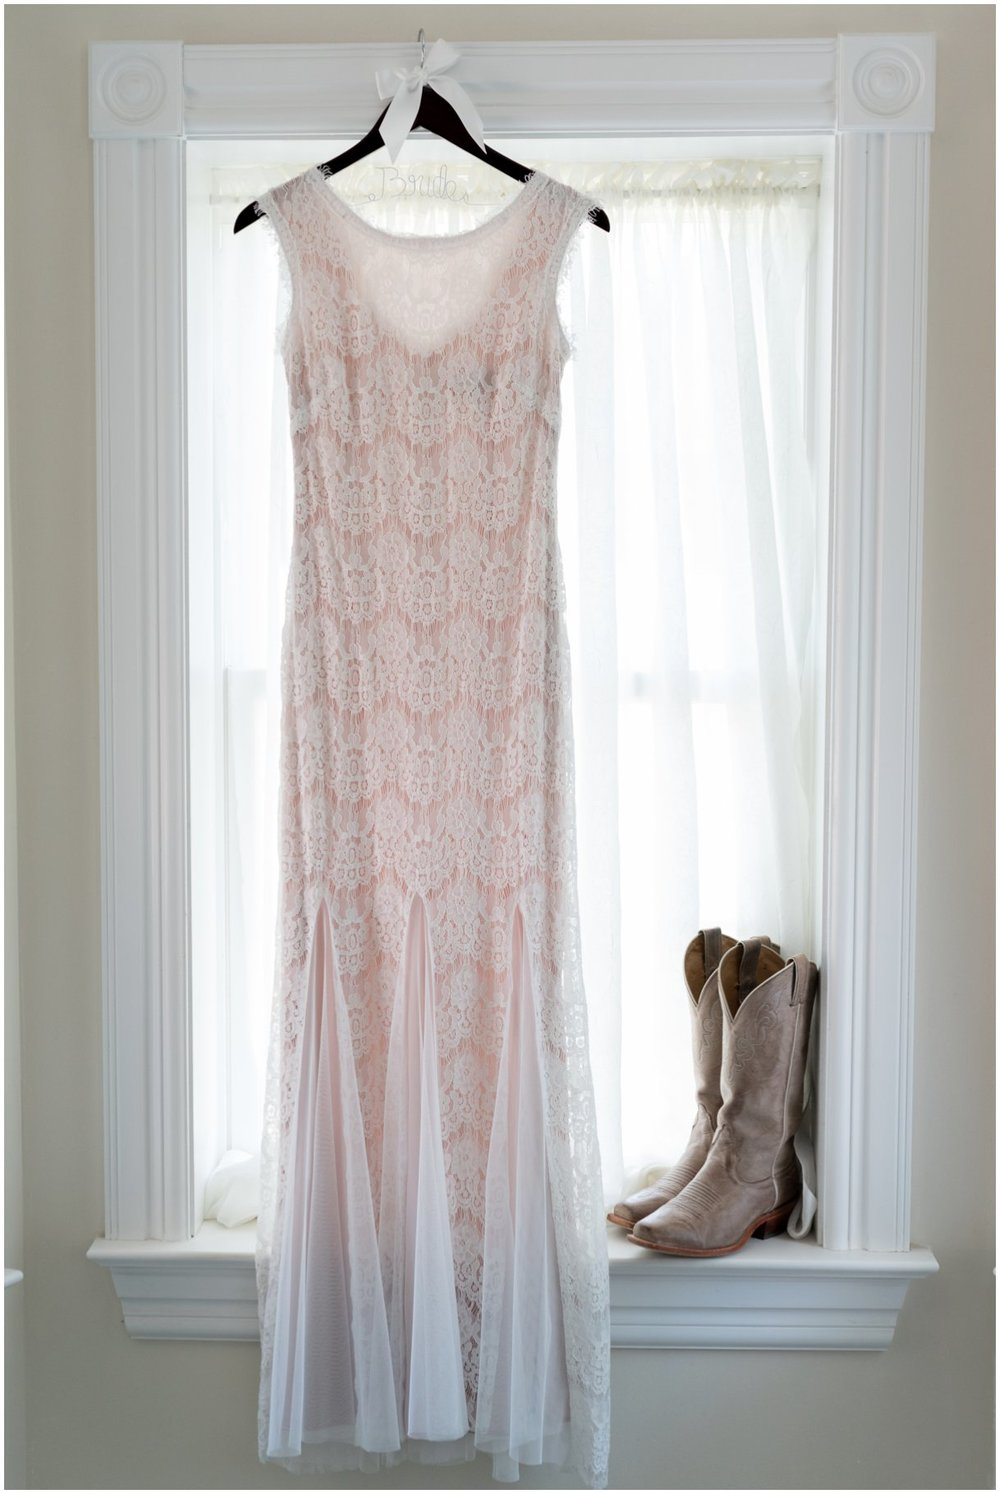 Bridal gown and boots for a Lancaster Summer outdoor farm wedding photo